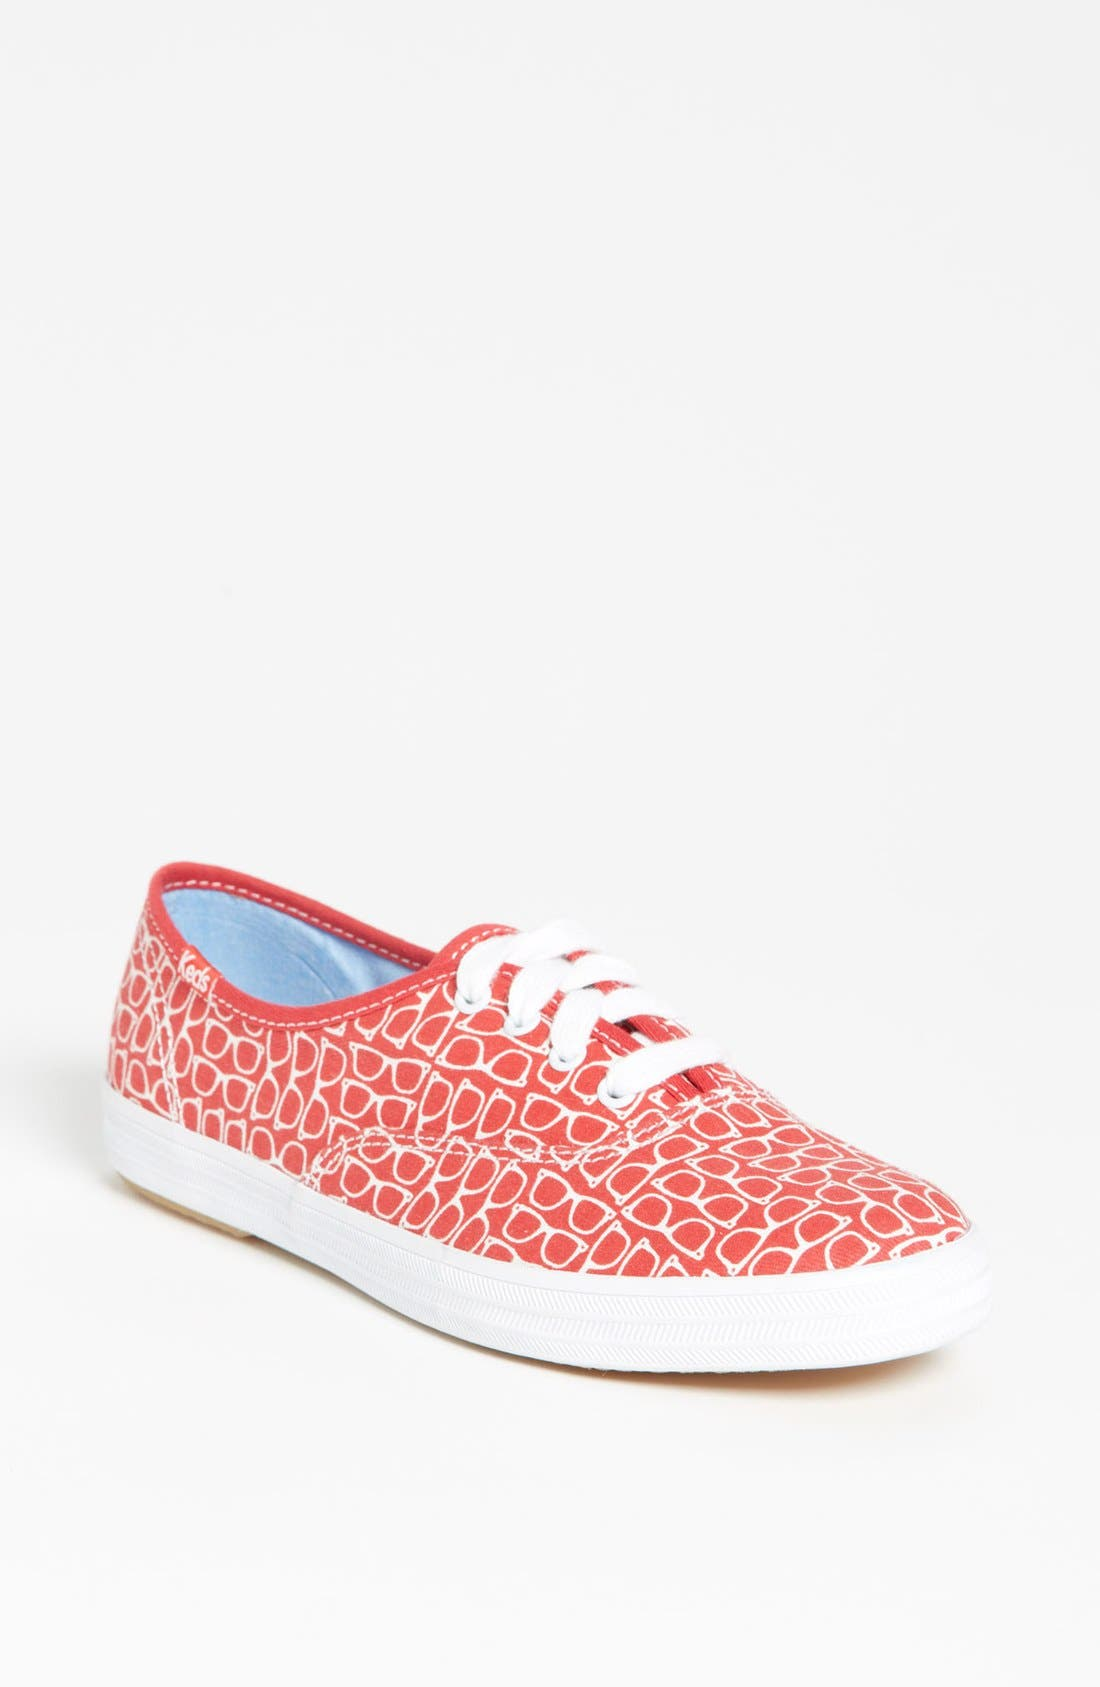 Main Image - Keds® Taylor Swift Champion Sneaker (Limited Edition) (Nordstrom Exclusive)